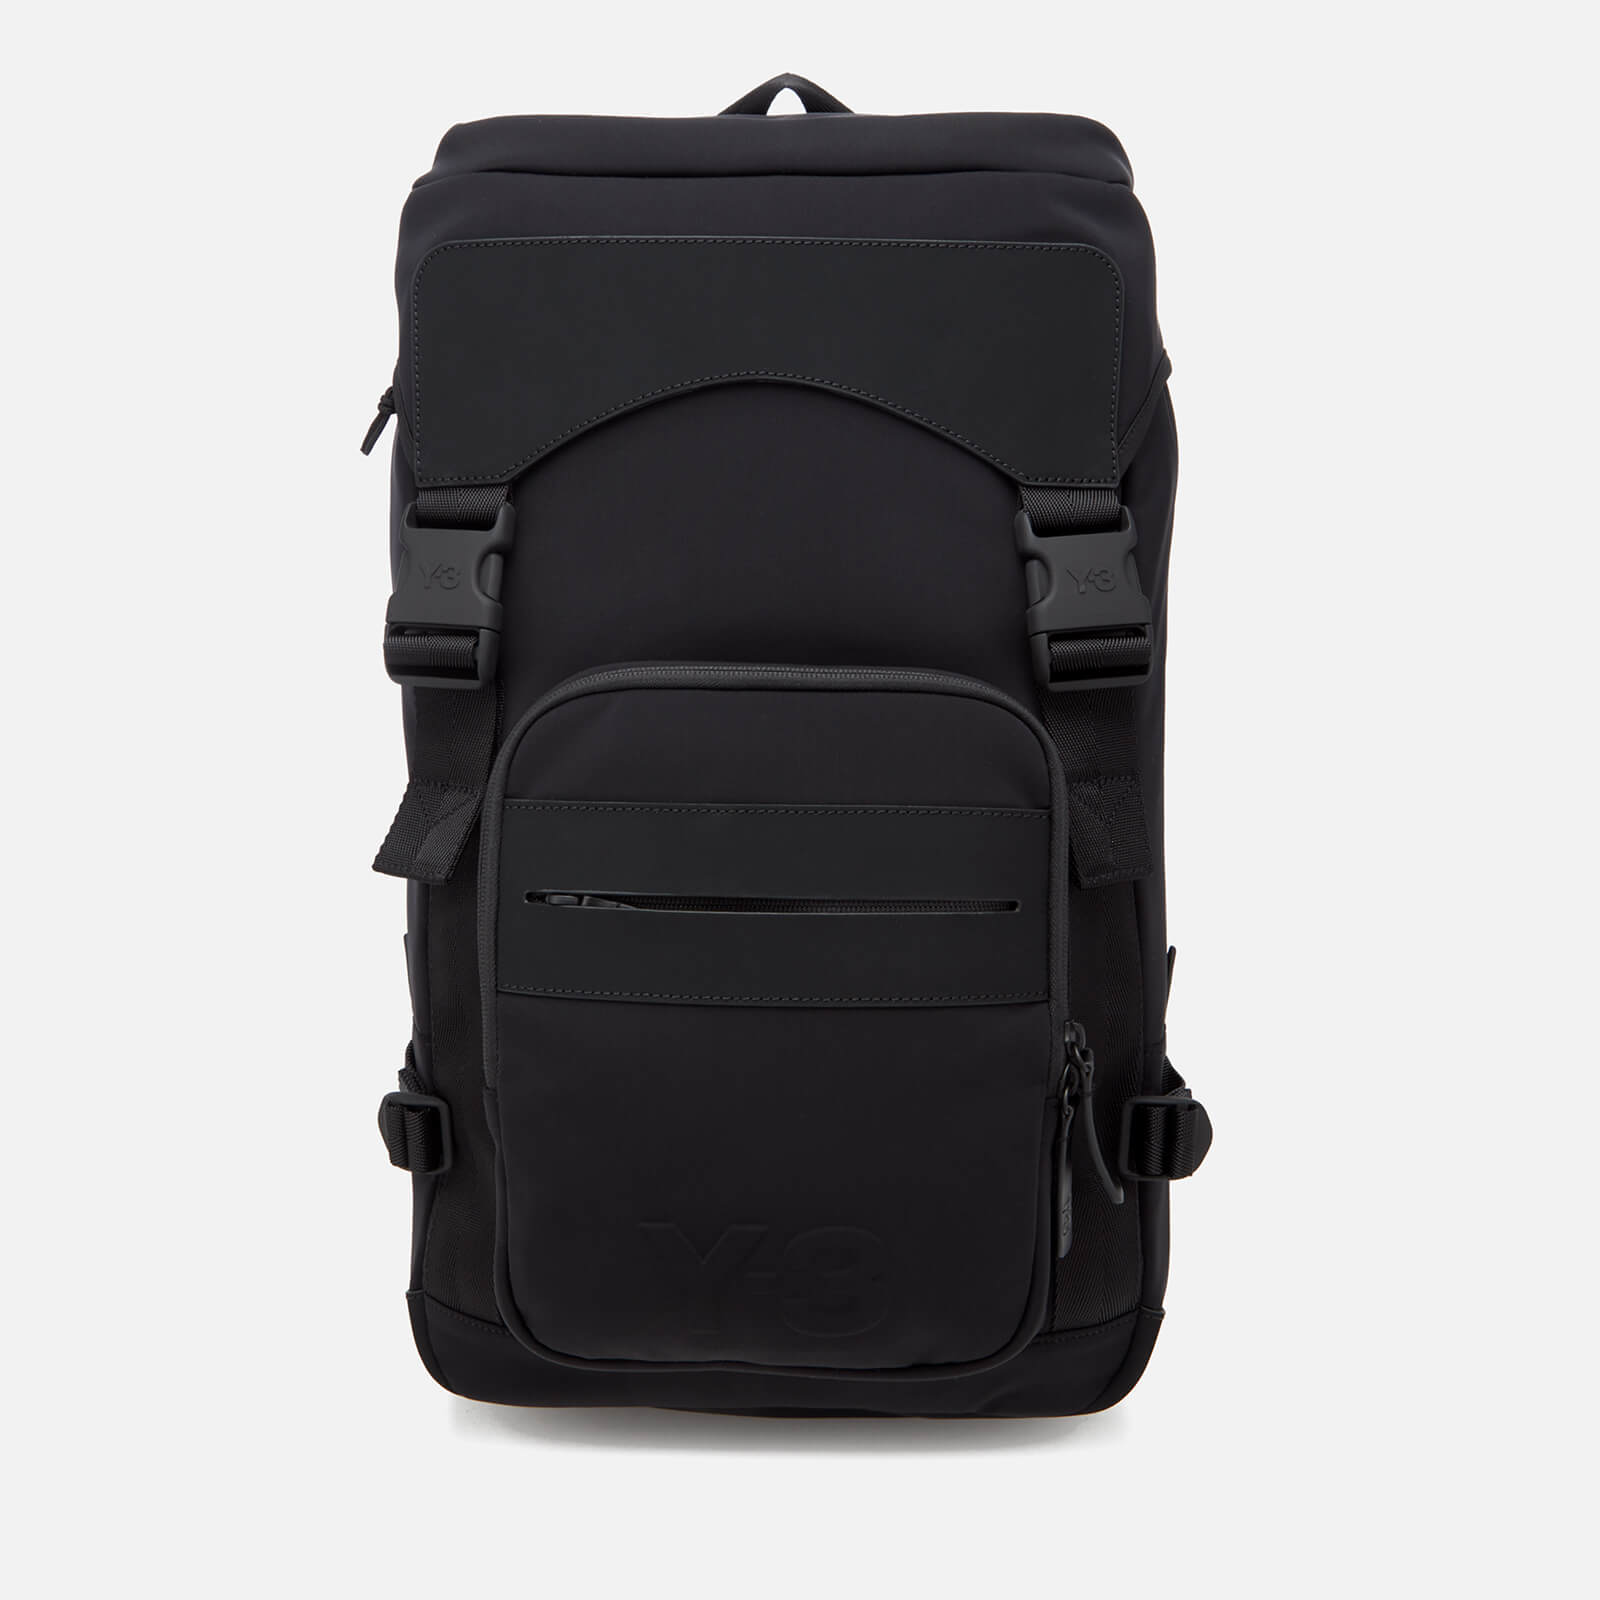 Y-3 Ultratech Backpack - Black - Free UK Delivery over £50 07f936986daad